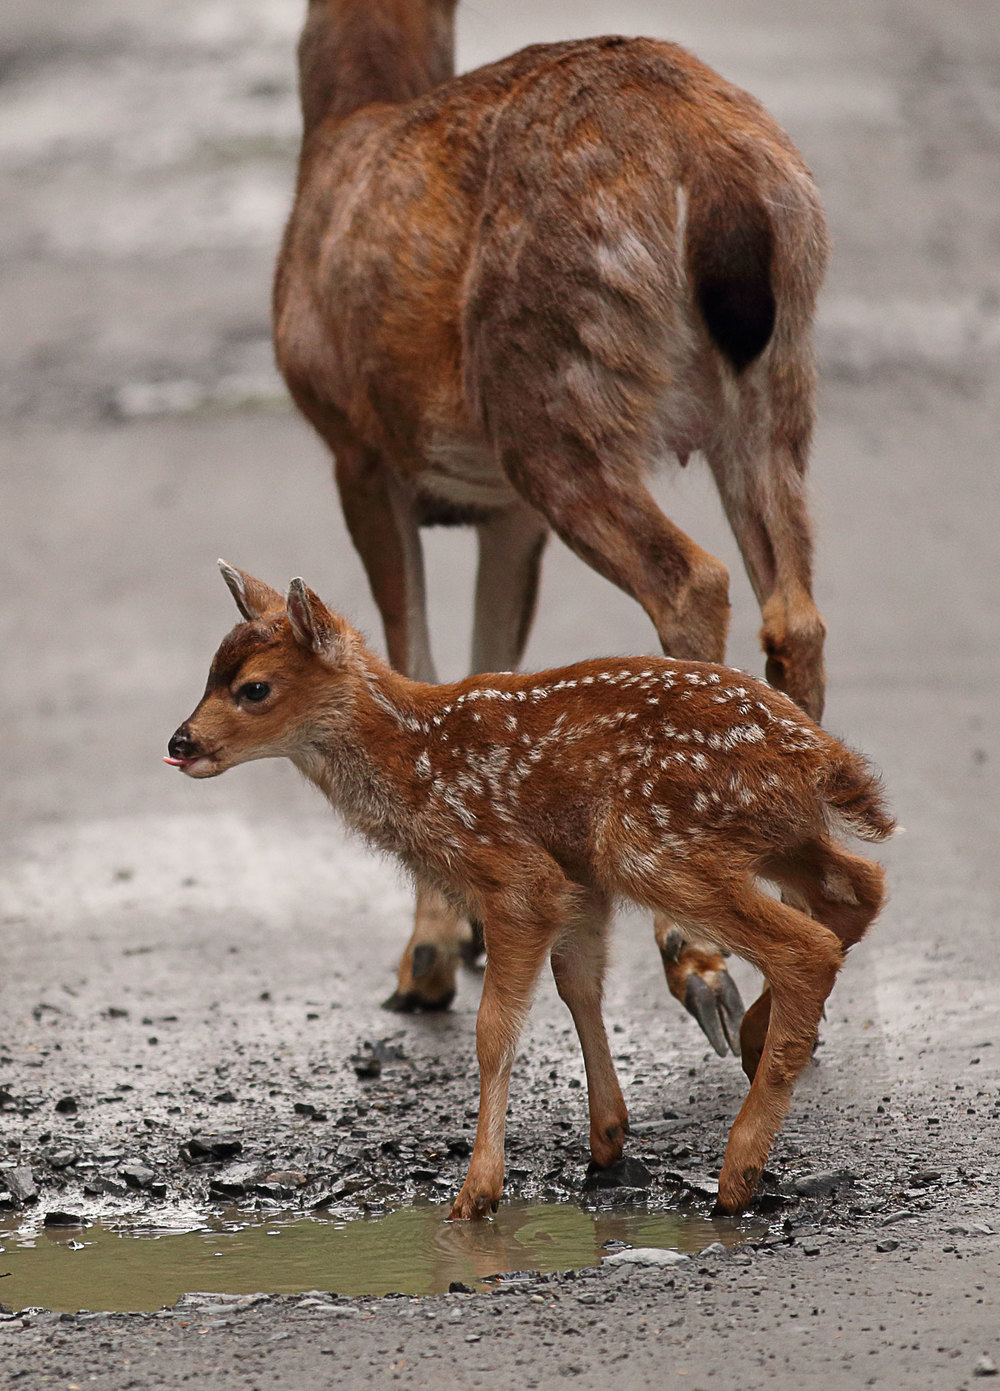 Sitka blacktail super cute fawn playing in a mud puddle in Southeast Alaska